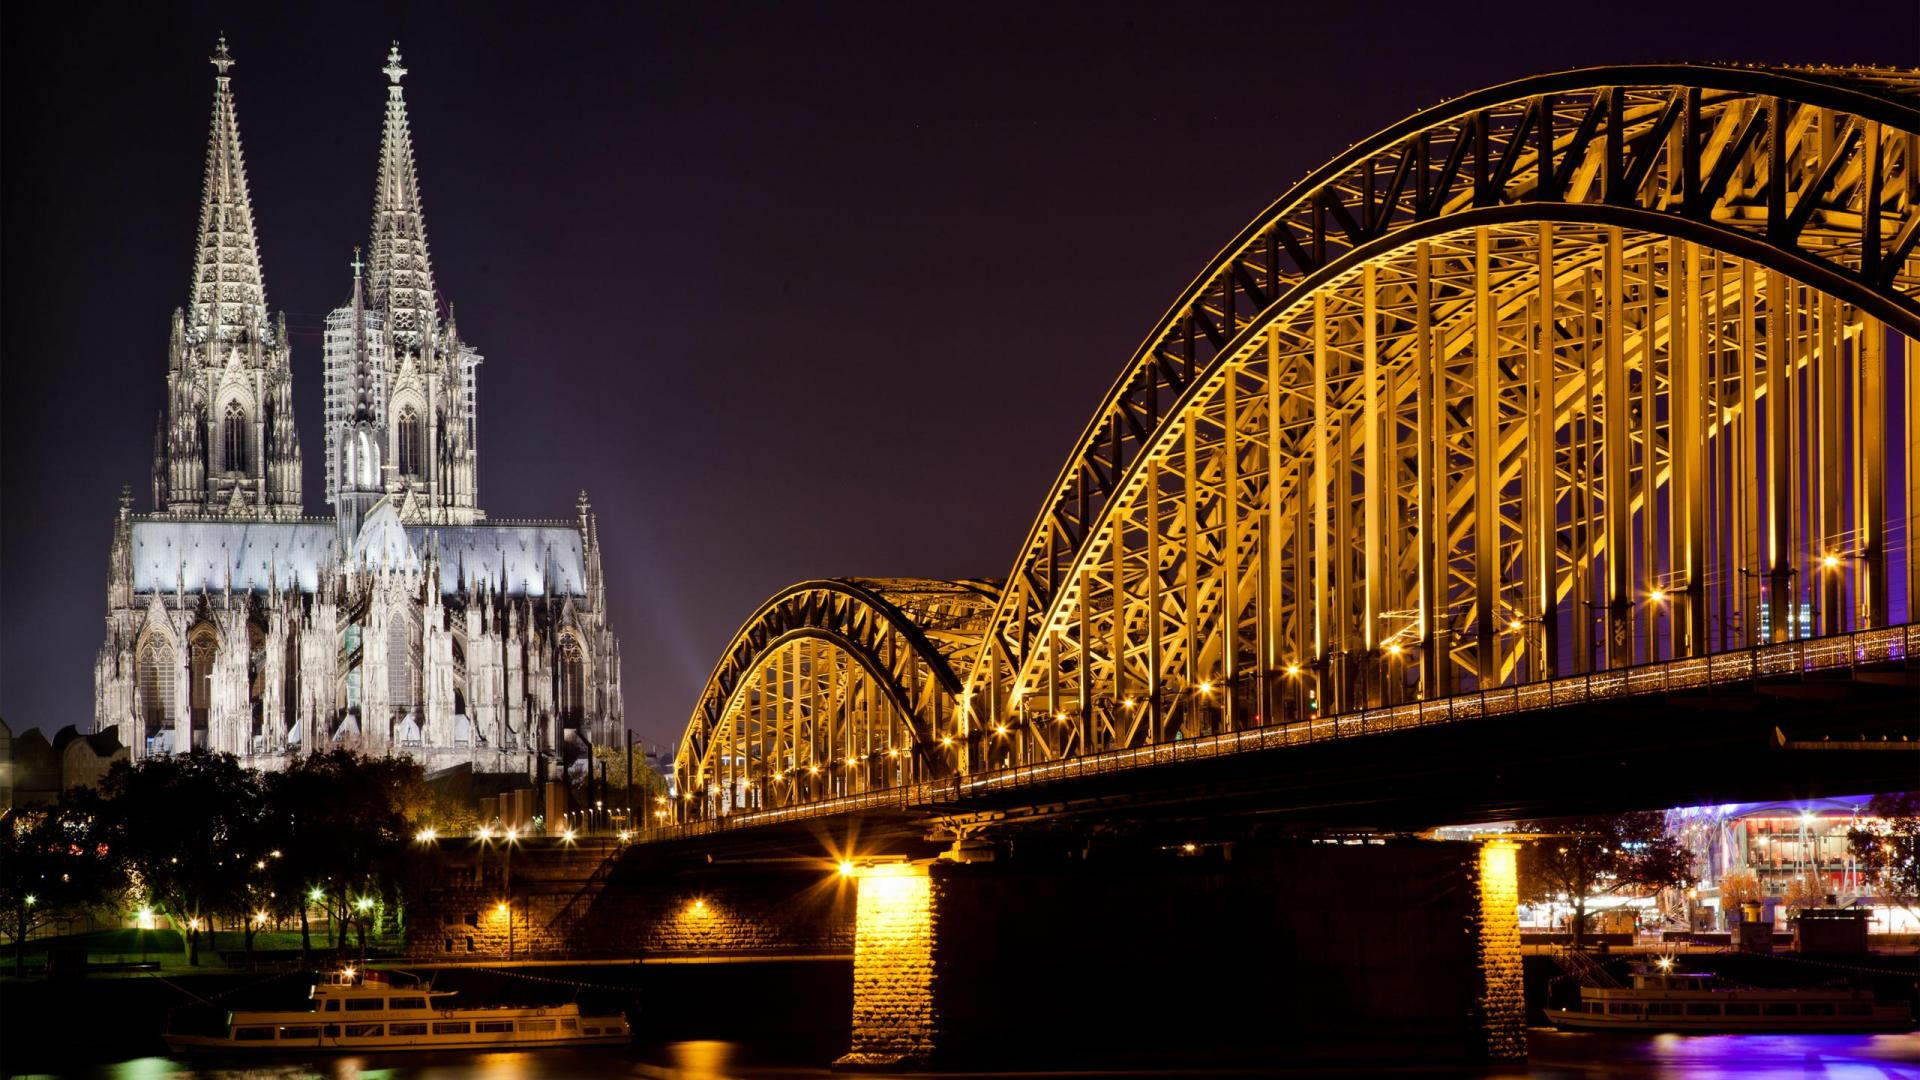 Awesome Hd Wallpapers 1080p: Cologne Cathedral Awesome Hd Wallpaperp Wallpapers 1920x1080px